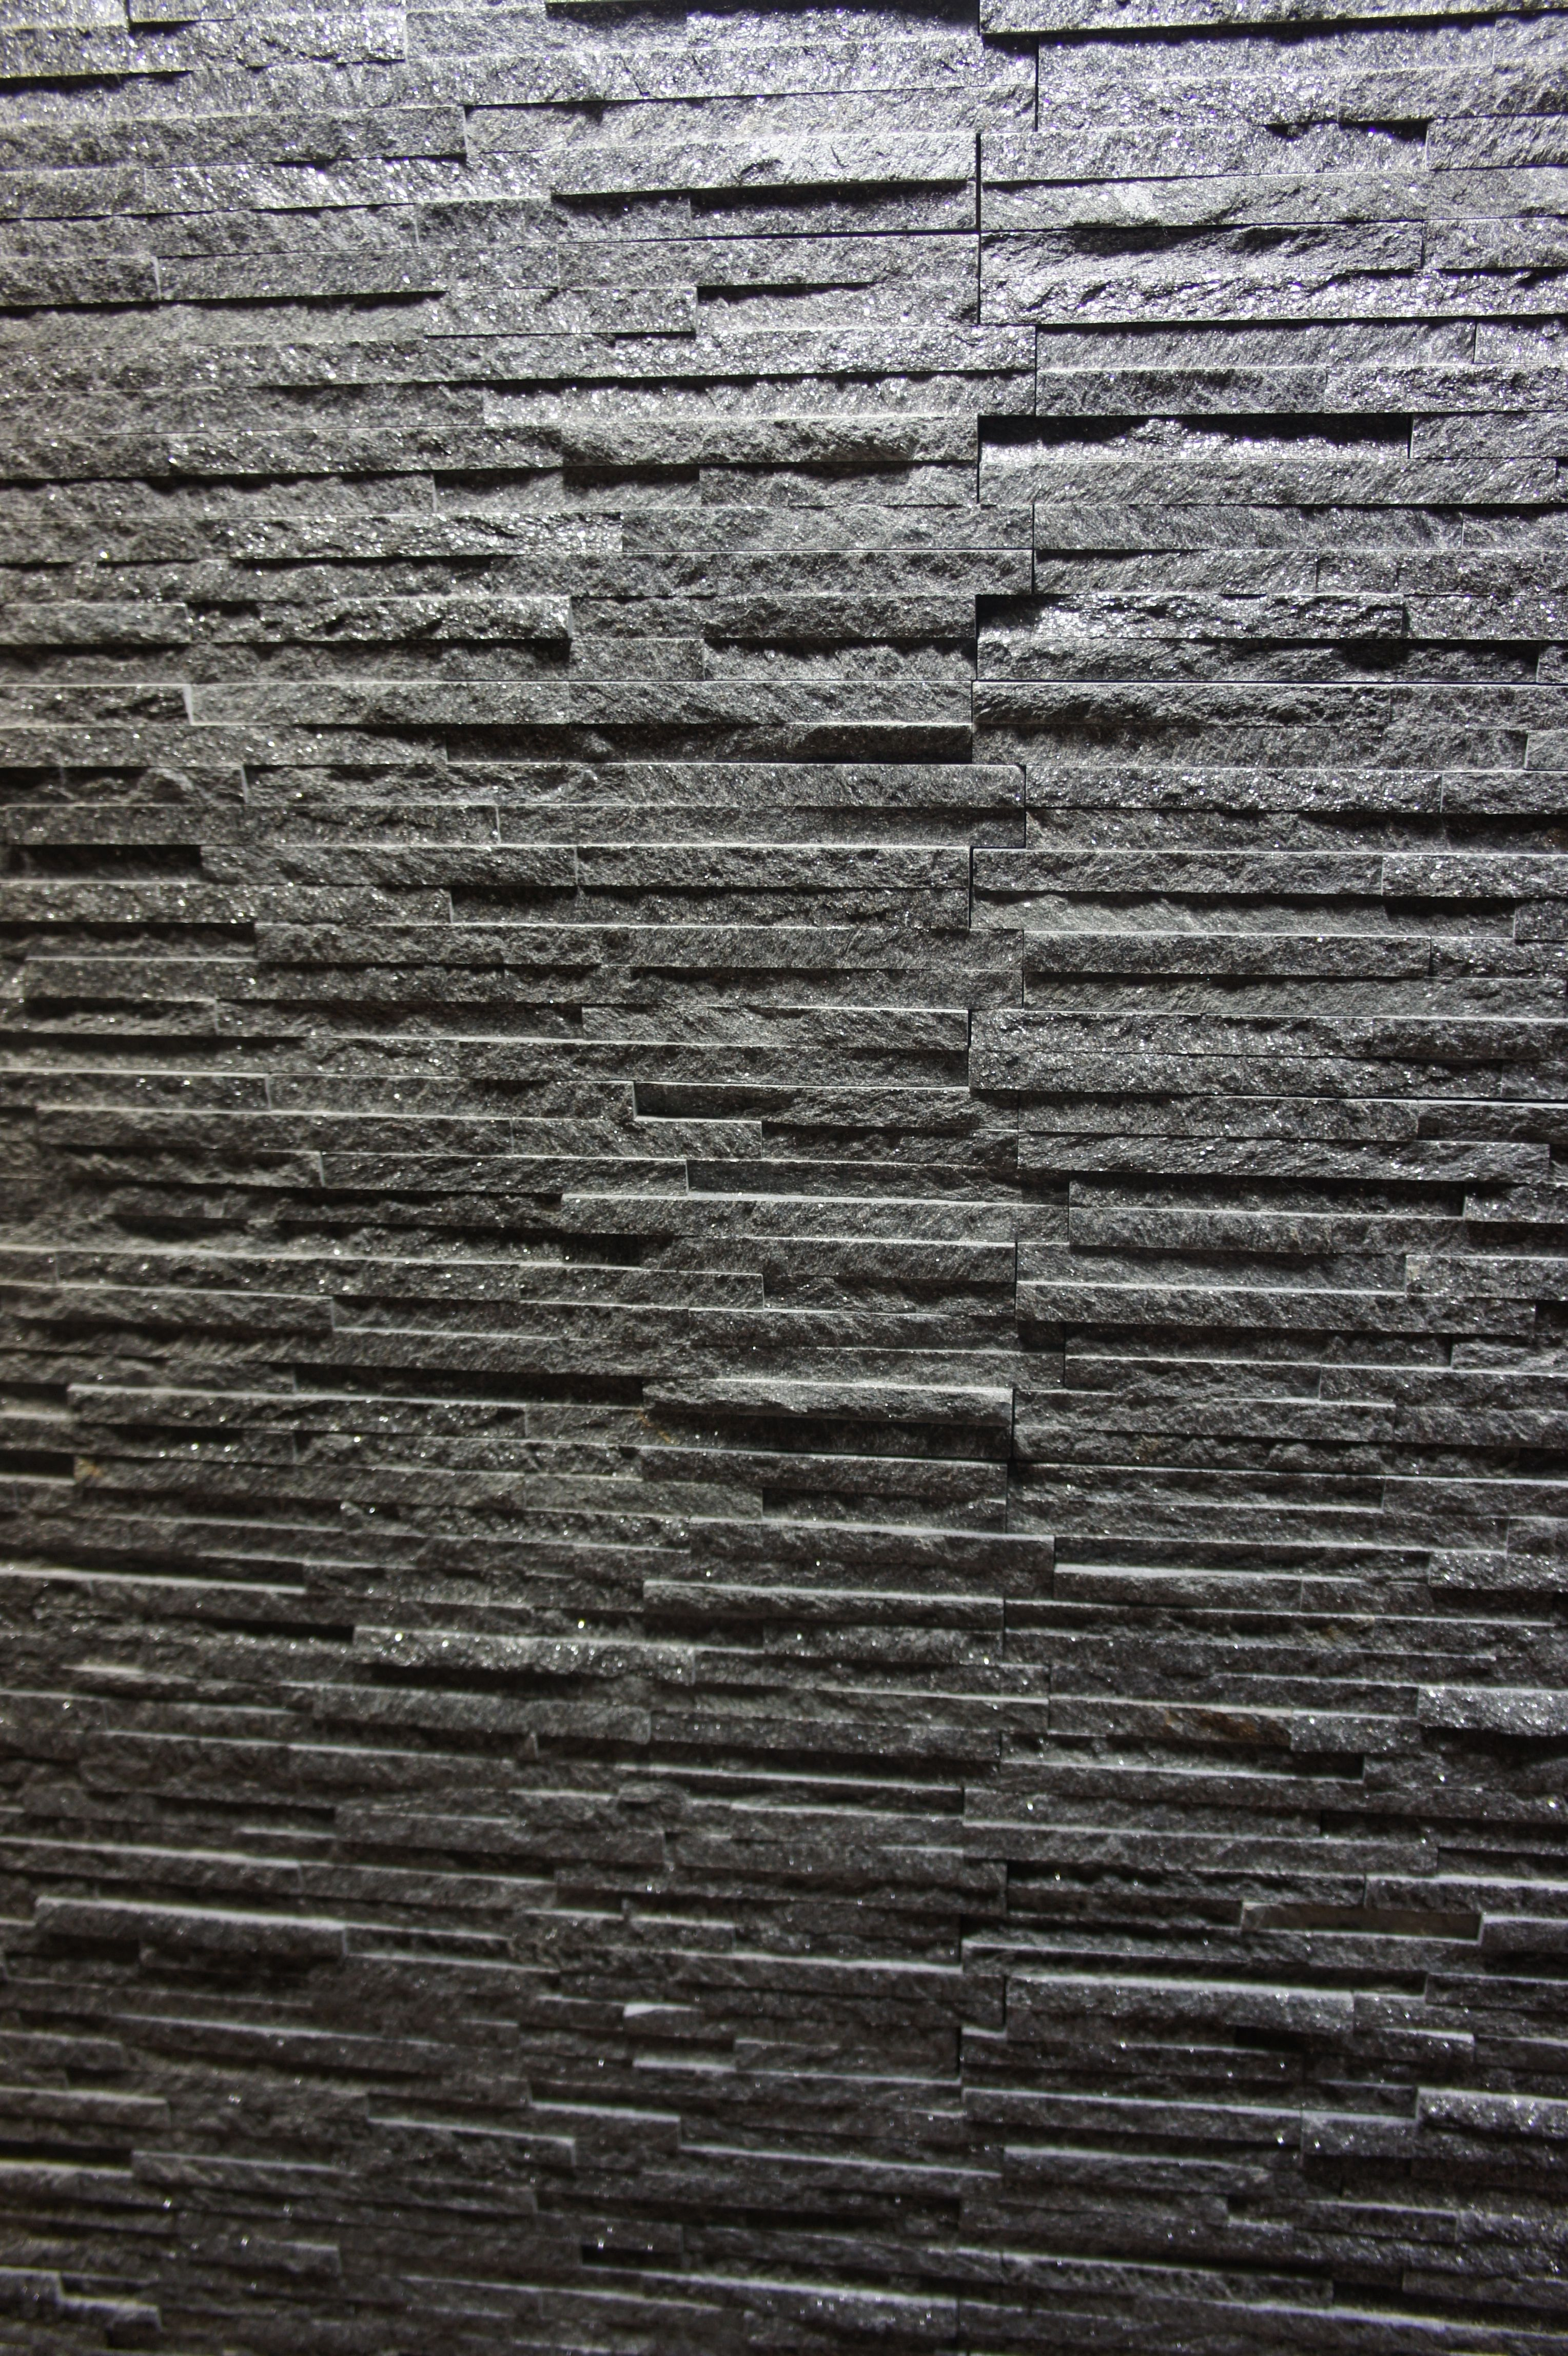 Dark Grey Stone Wall Cladding For Your Home Interior Stone Wall Cladding Grey Stone Wall Wall Cladding